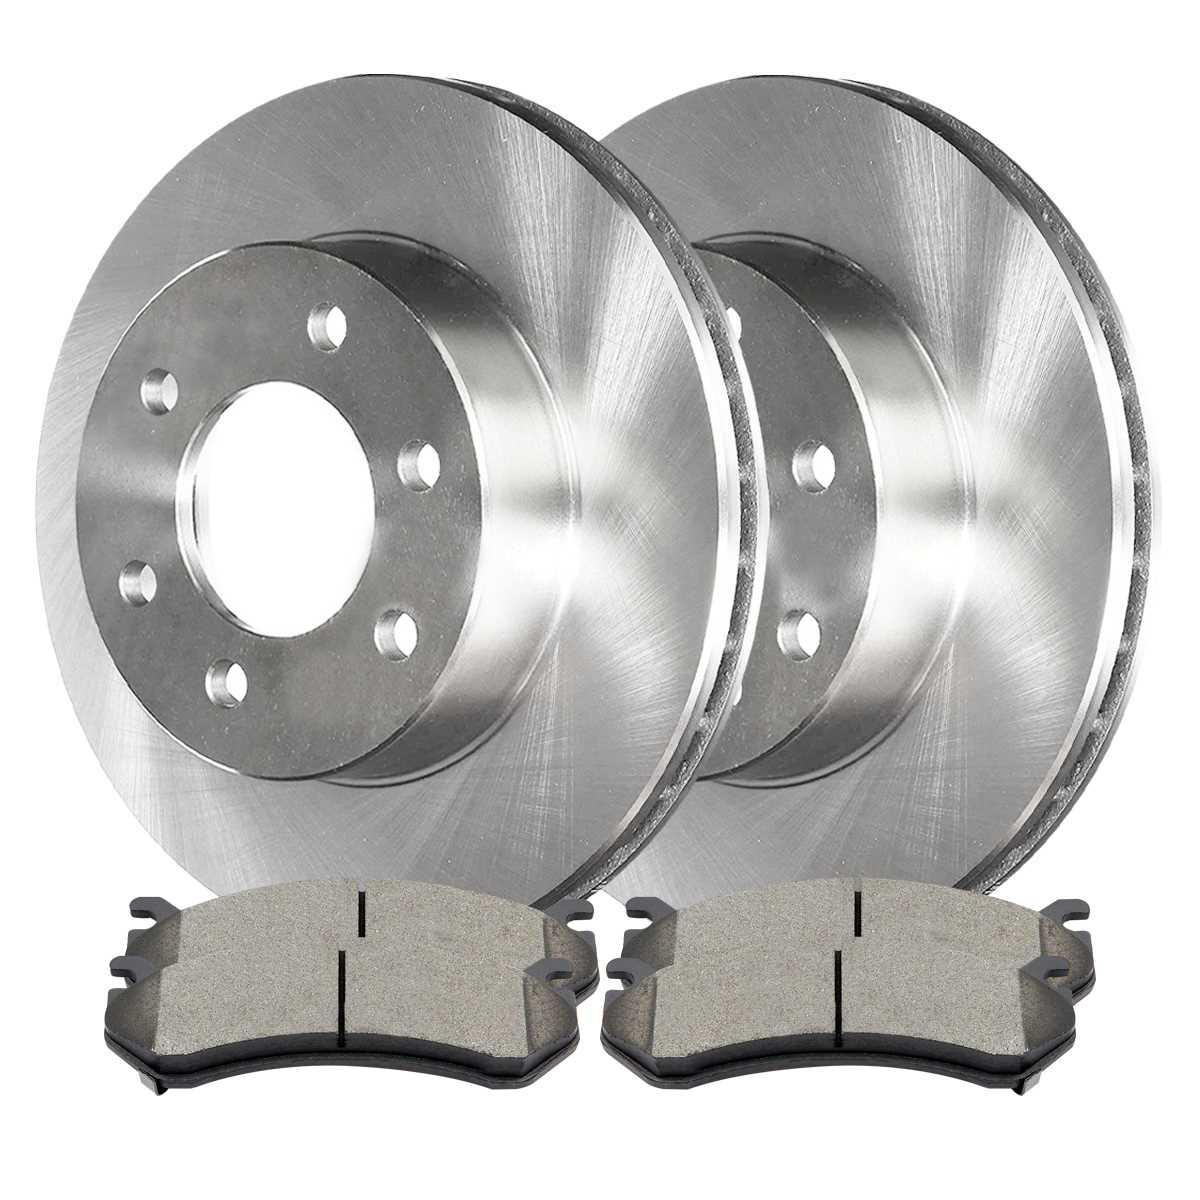 AutoShack R65036R65041 Front and Rear Brake Rotors